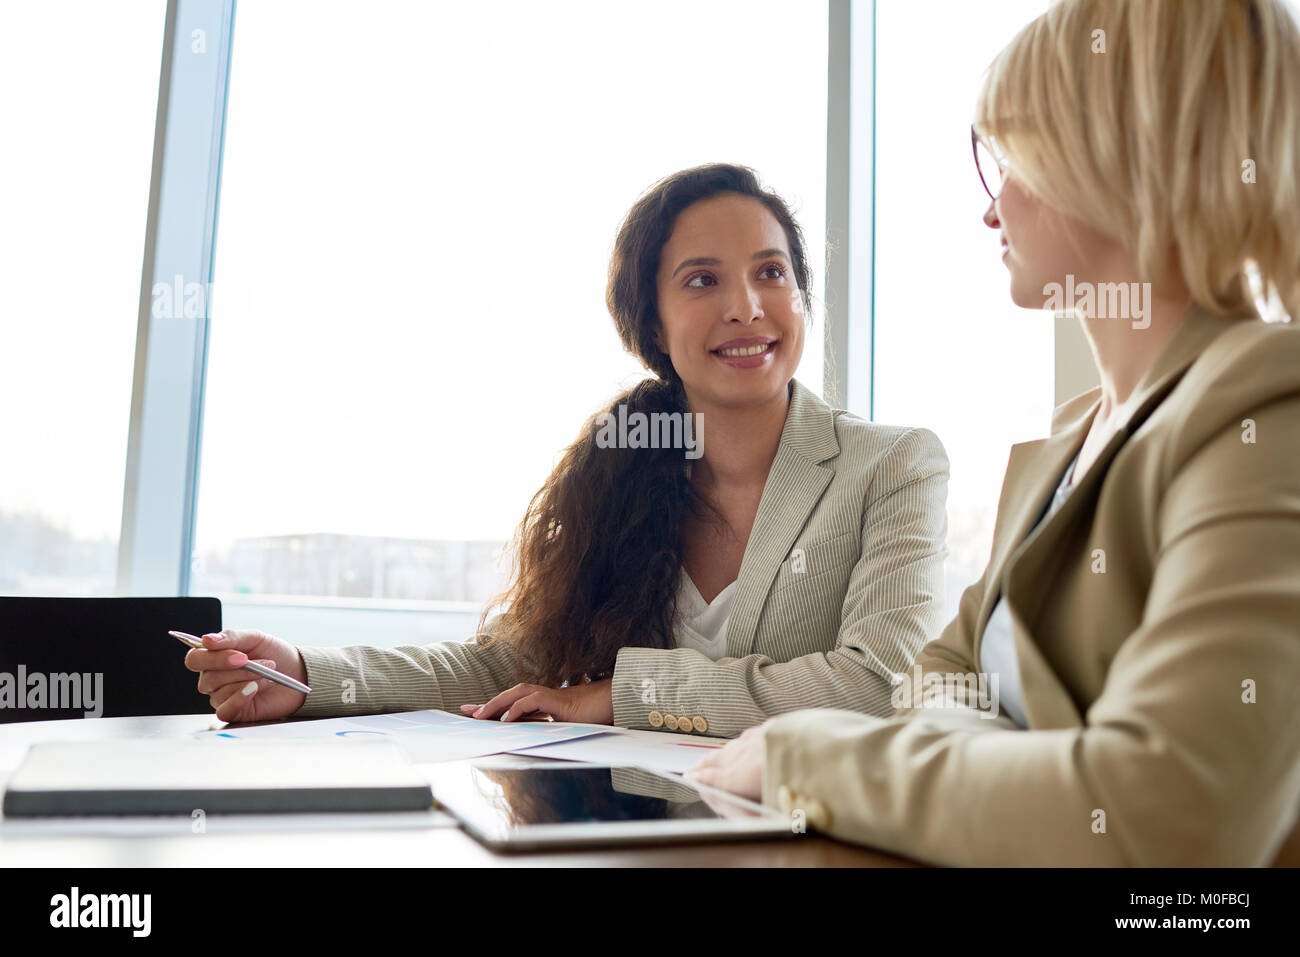 Sharing Creative Ideas with Coworker - Stock Image